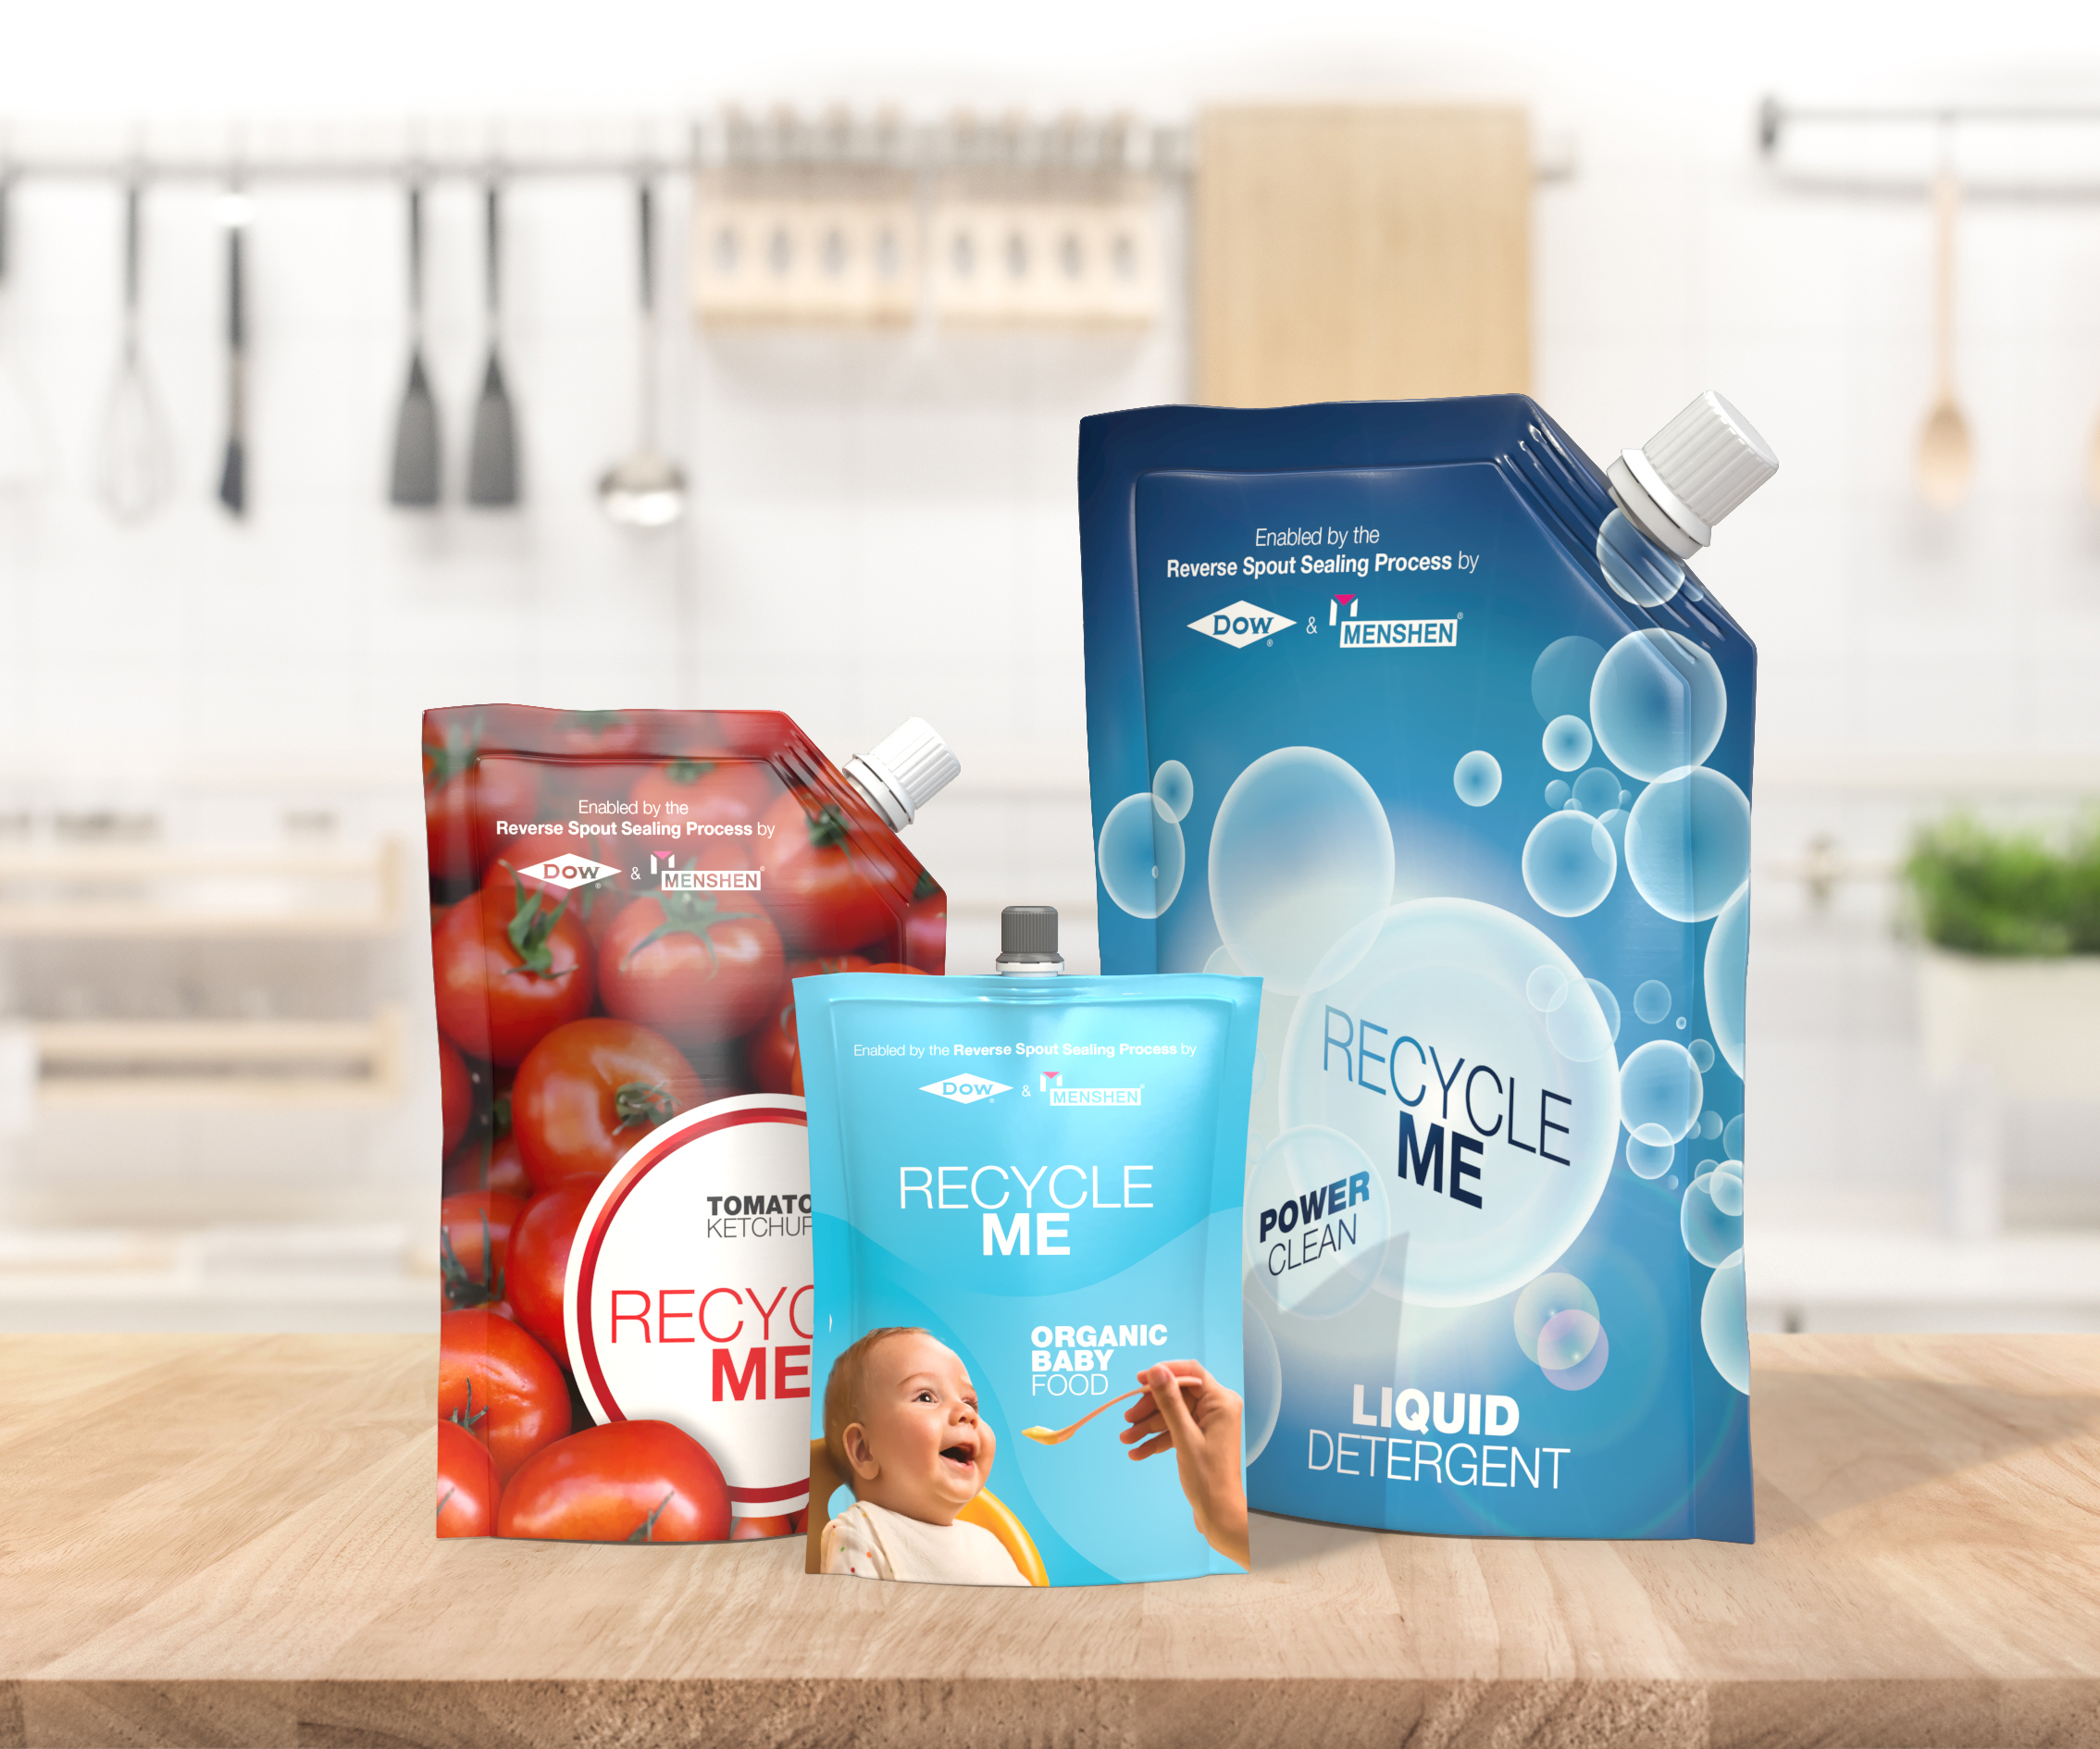 Recyclable All Pe Pouches Sustainable Opportunity For Film Extruders Plastics Technology If you are a kid, the wait staff gives you a handfull. recyclable all pe pouches sustainable